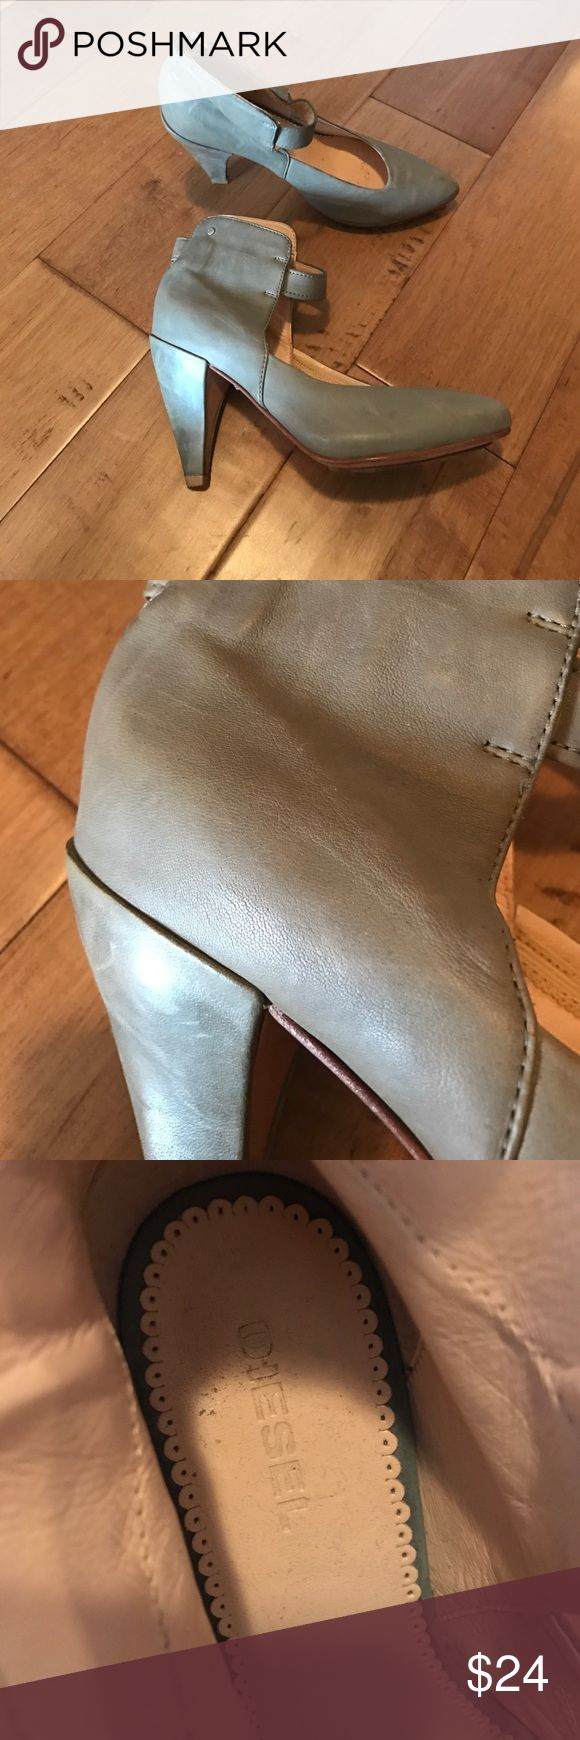 Diesel Grey Shoes Distressed taupe-grey leather. Soft ankle wrap in leather with elastic stretchy band. In good condition! By Diesel. Heel is about 2.5 inches. Diesel Shoes Heels